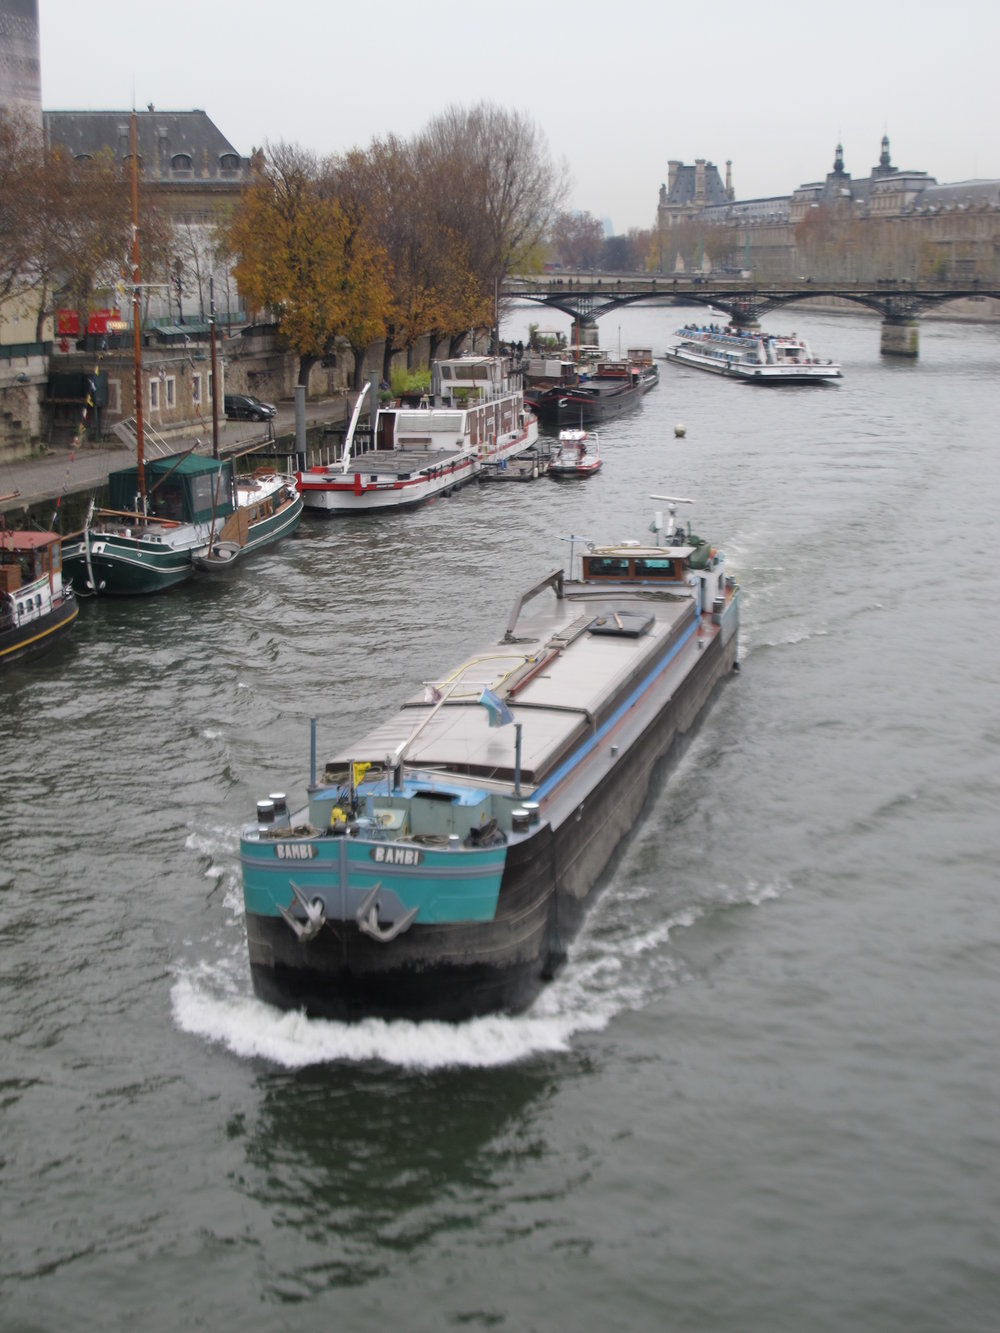 Peniche barge on the Seine Paris.JPG